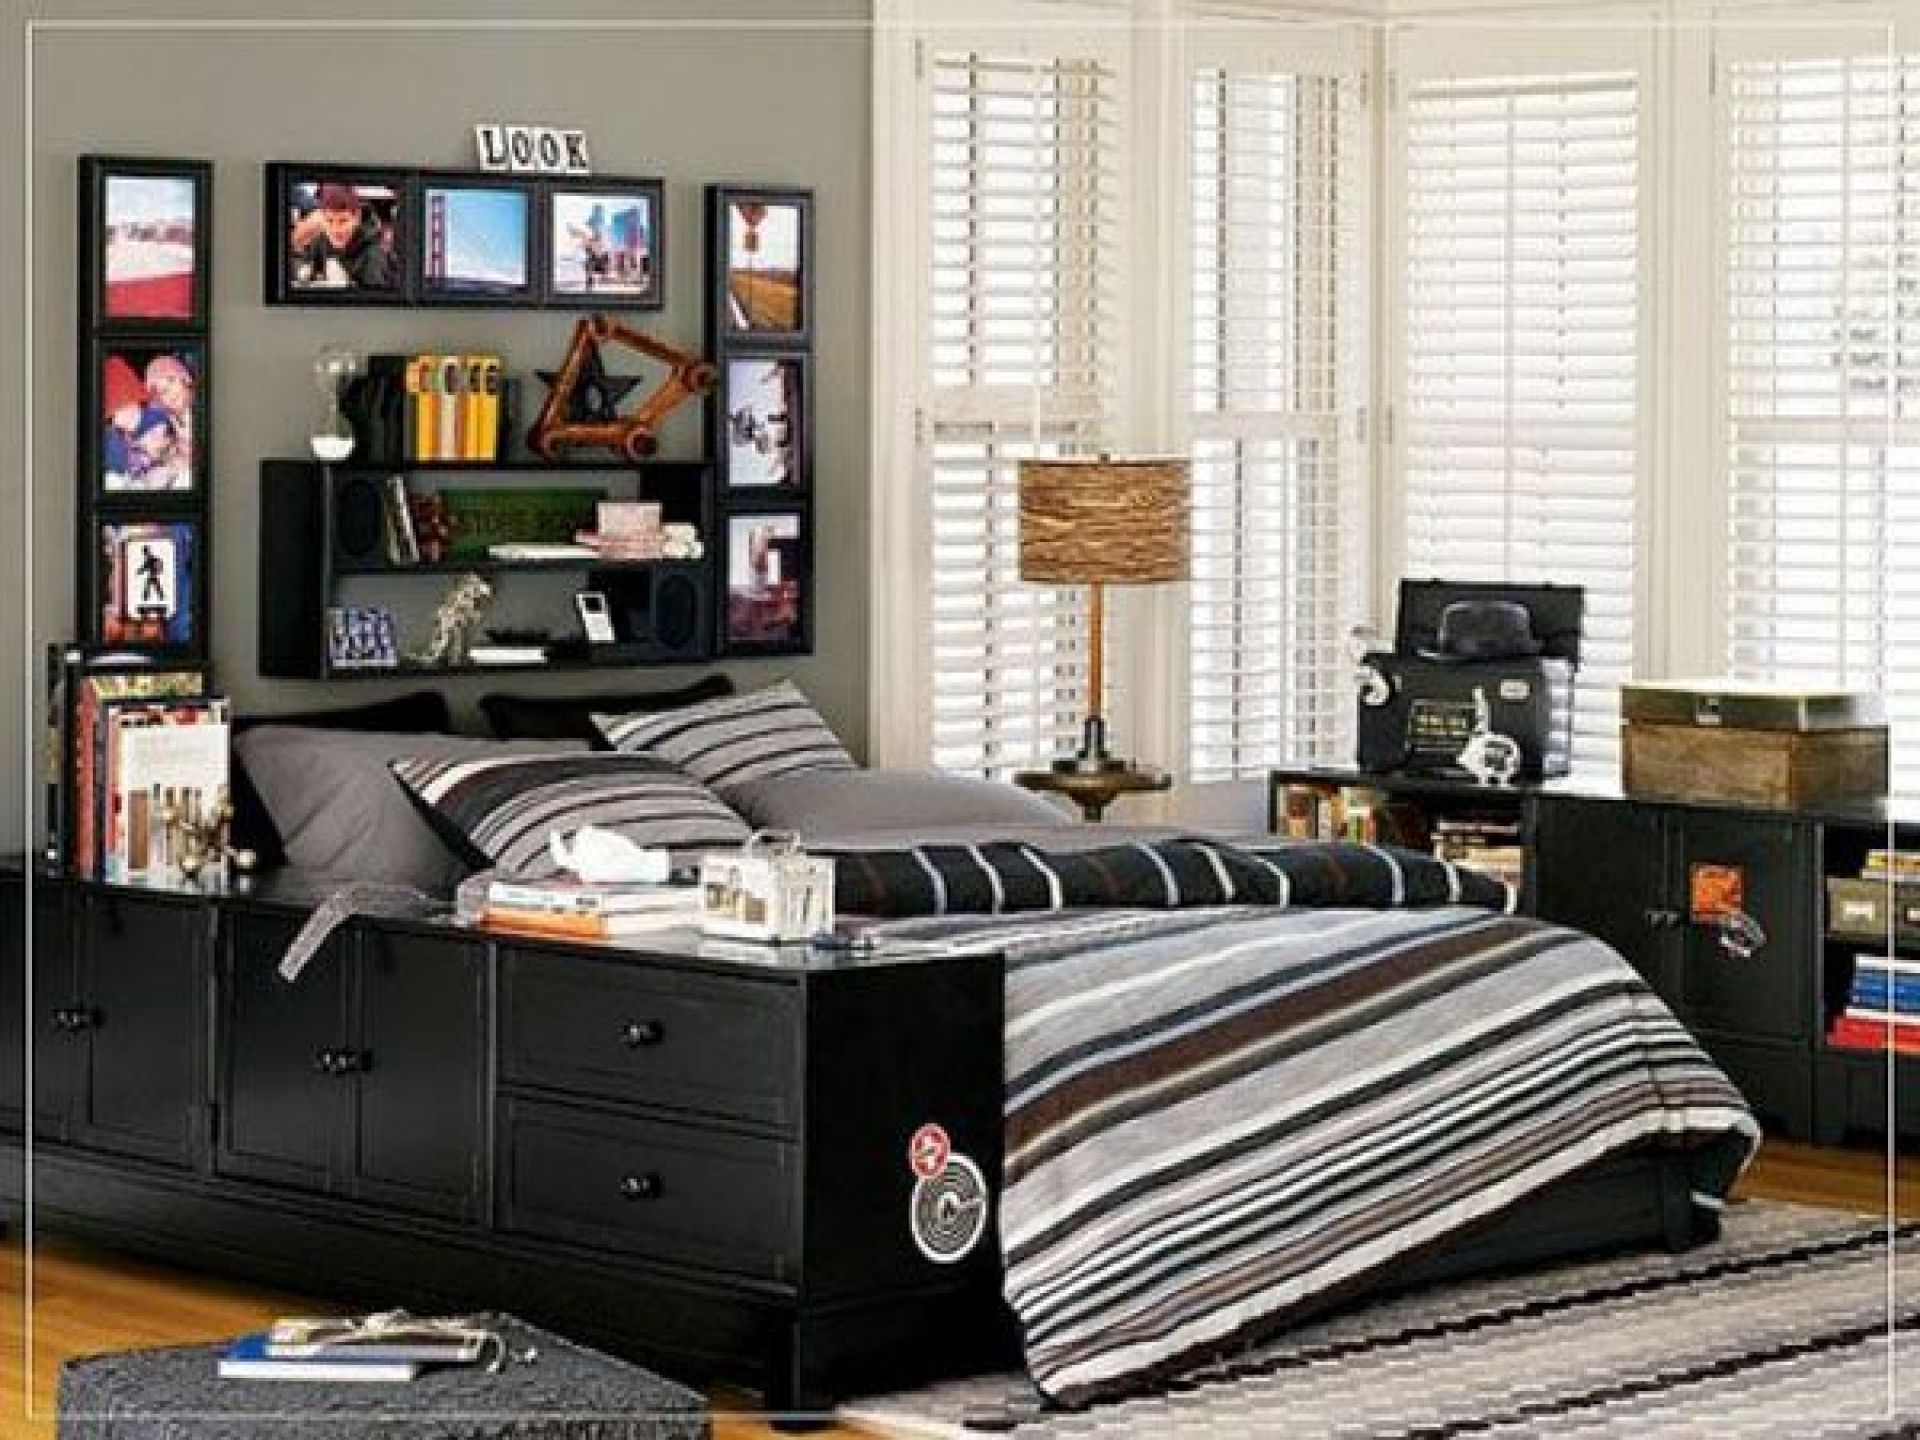 Cool Room Ideas For Teenagers Awesome Bedroom Ideas For Teenage Guys With Small Rooms  Google Search . Review